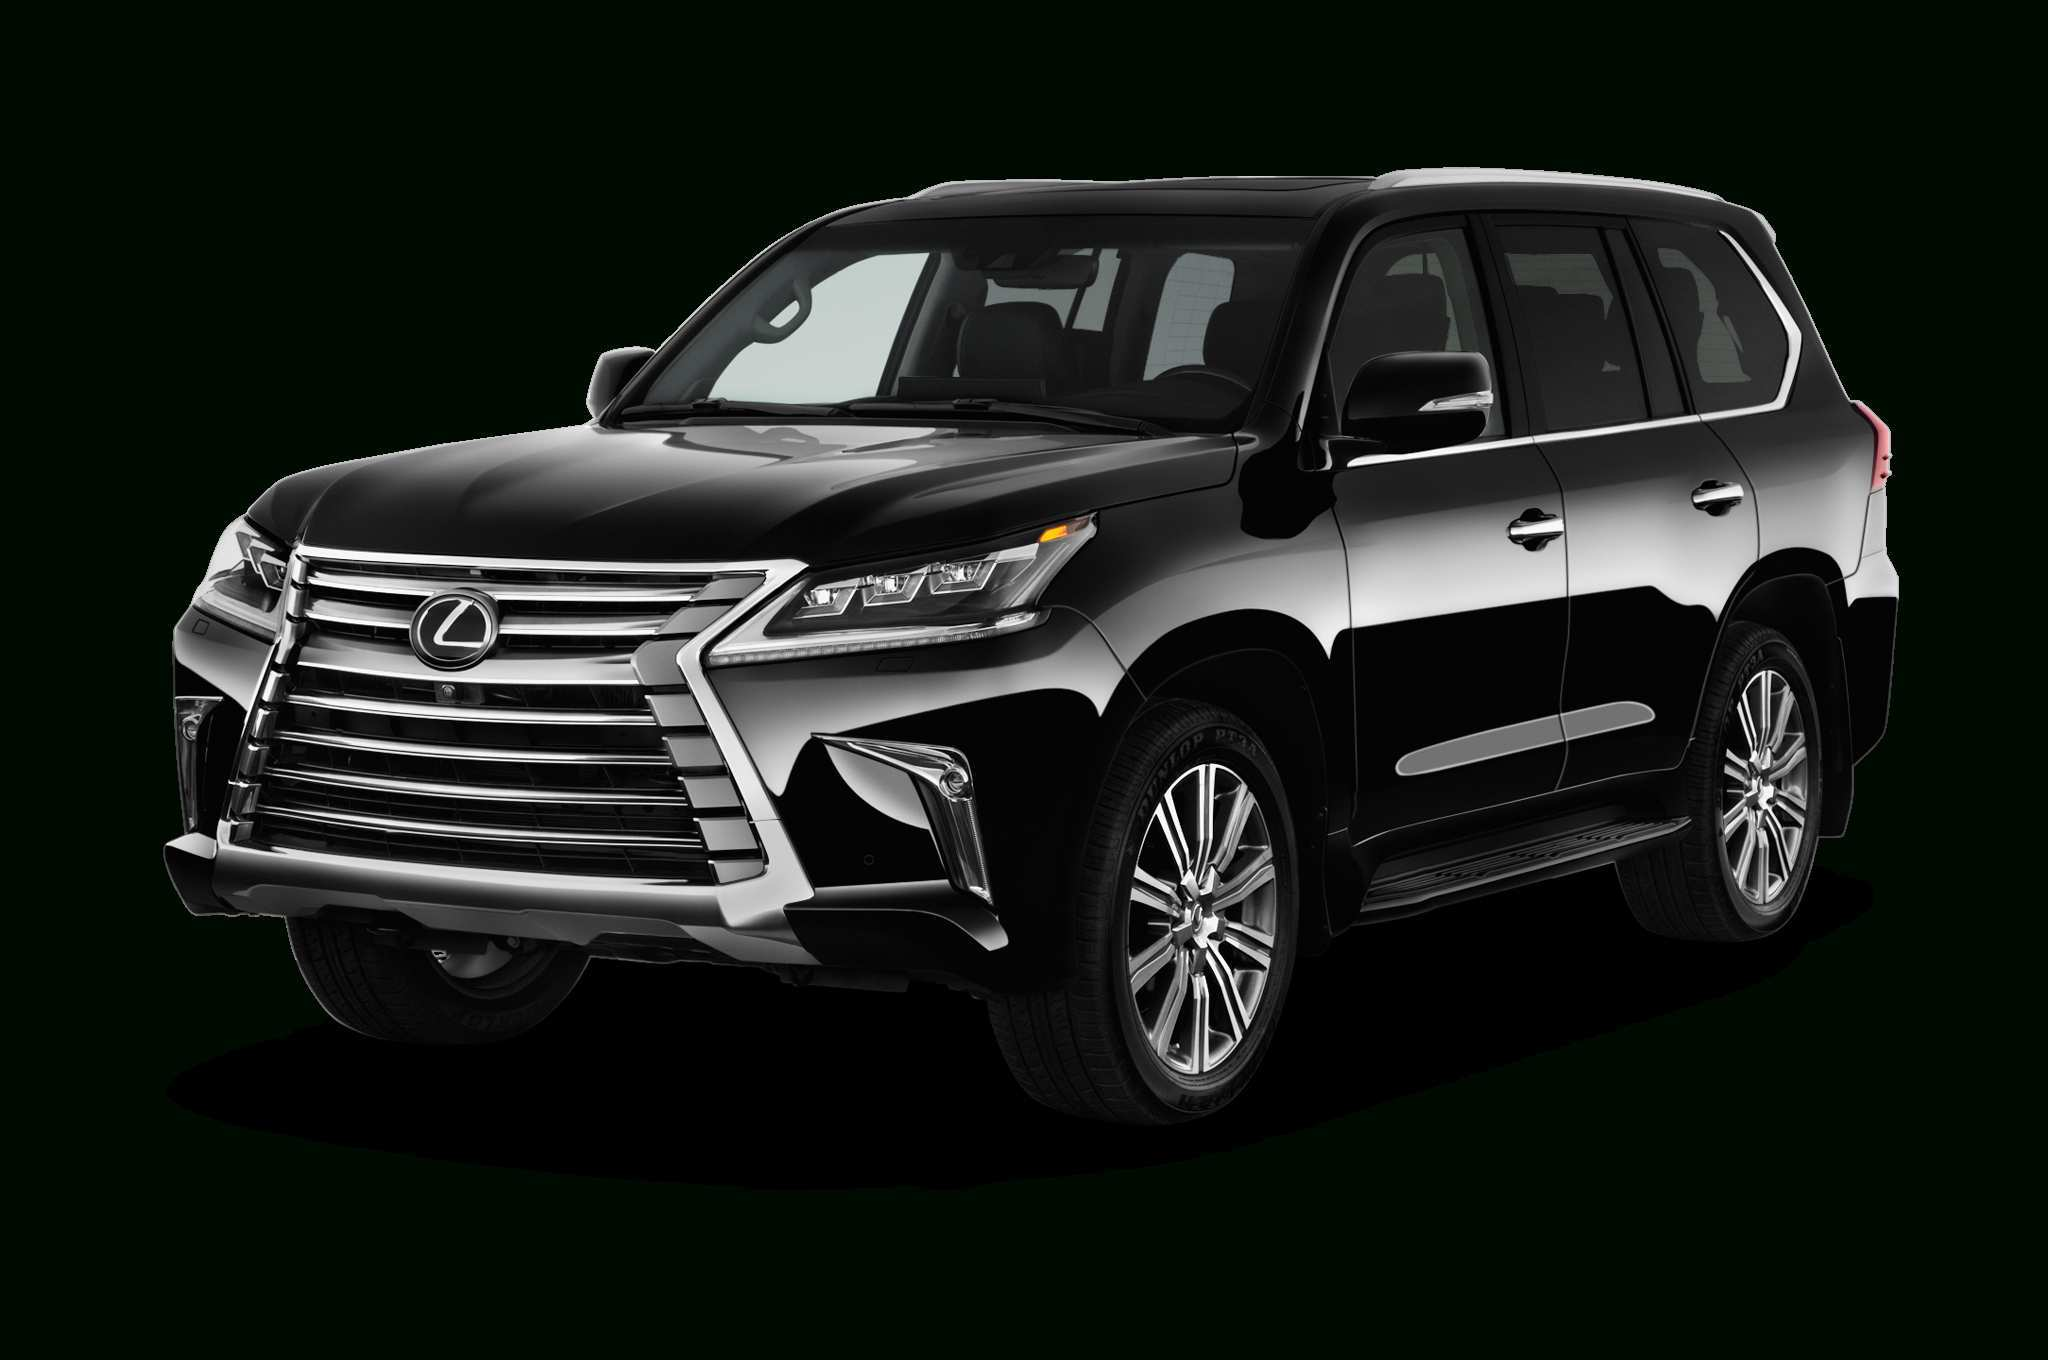 93 All New New Jeepeta Lexus 2019 Redesign Price And Review Concept for New Jeepeta Lexus 2019 Redesign Price And Review